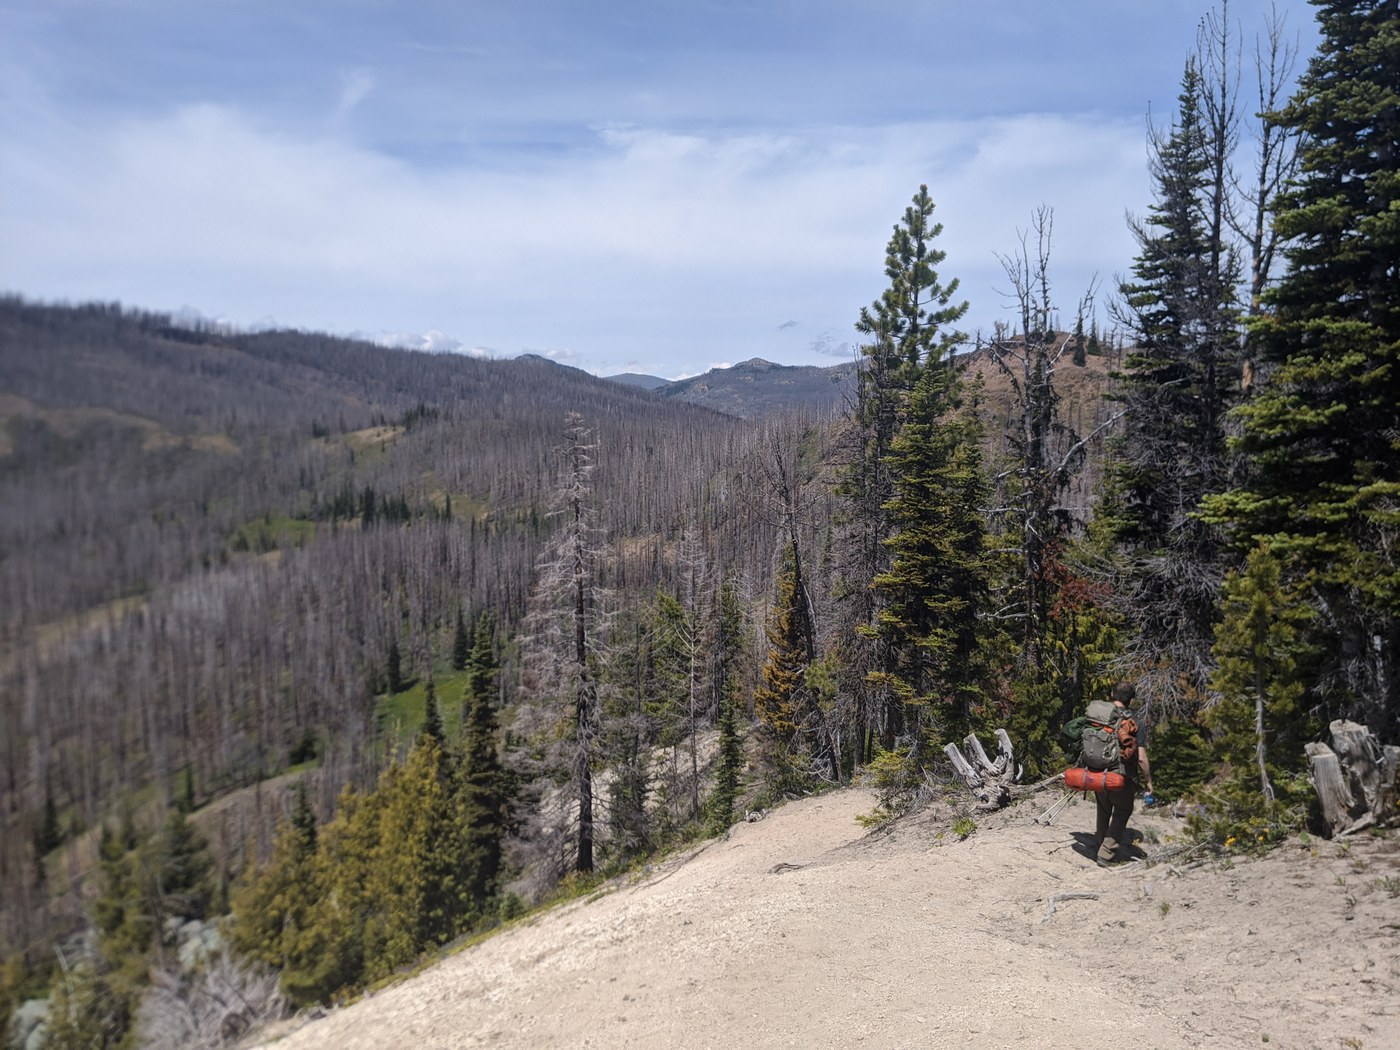 A backpacker heads downhill from a small peak. In the background are hills with patches of meadows and large swaths of burned forest.